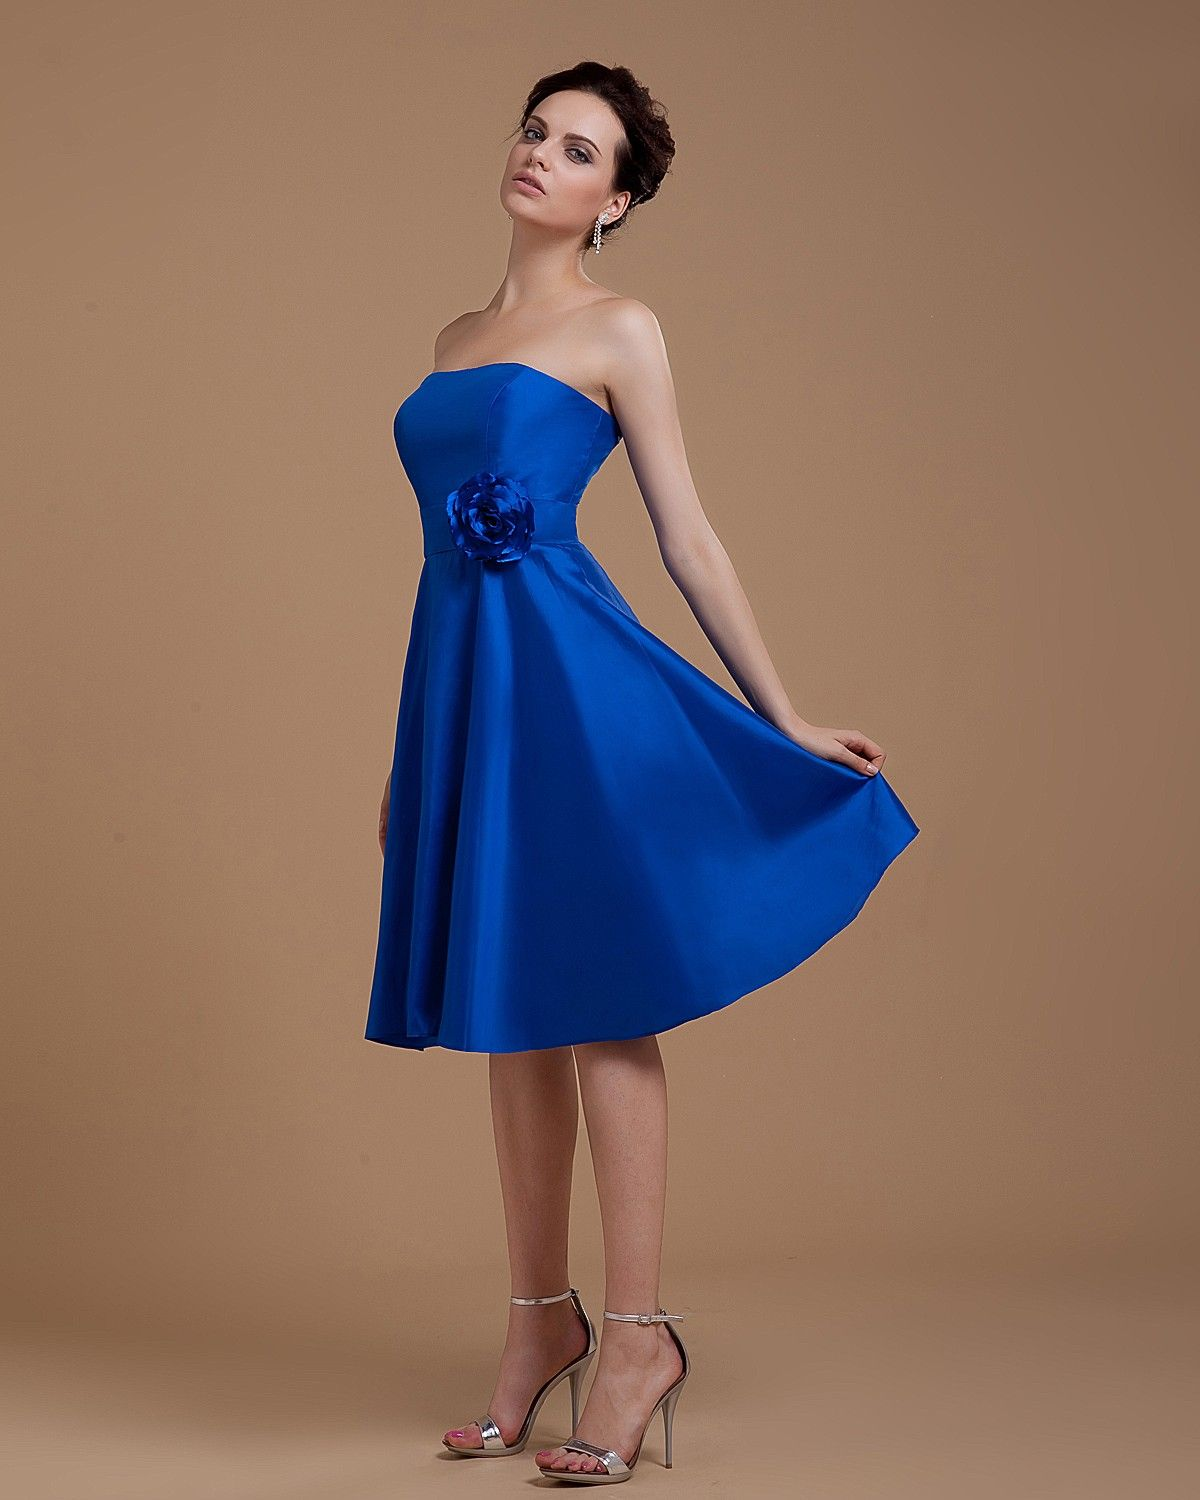 Royal blue and black bridesmaid dresses strapless knee length royal blue and black bridesmaid dresses strapless knee length royal blue bridesmaid dresses with flower ombrellifo Gallery